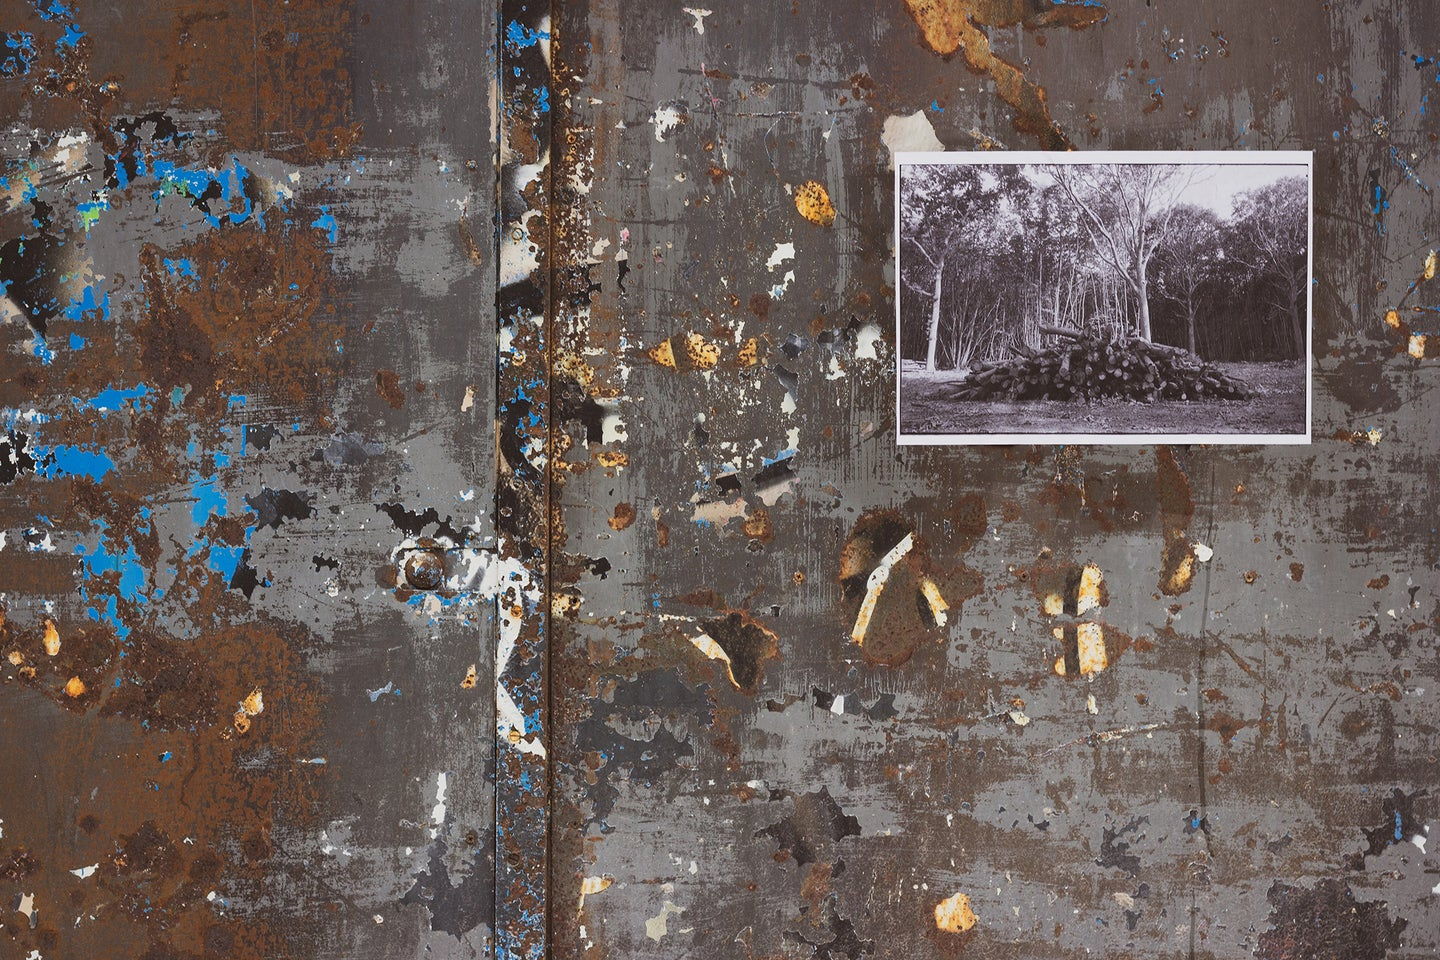 photo print on a dirty surface